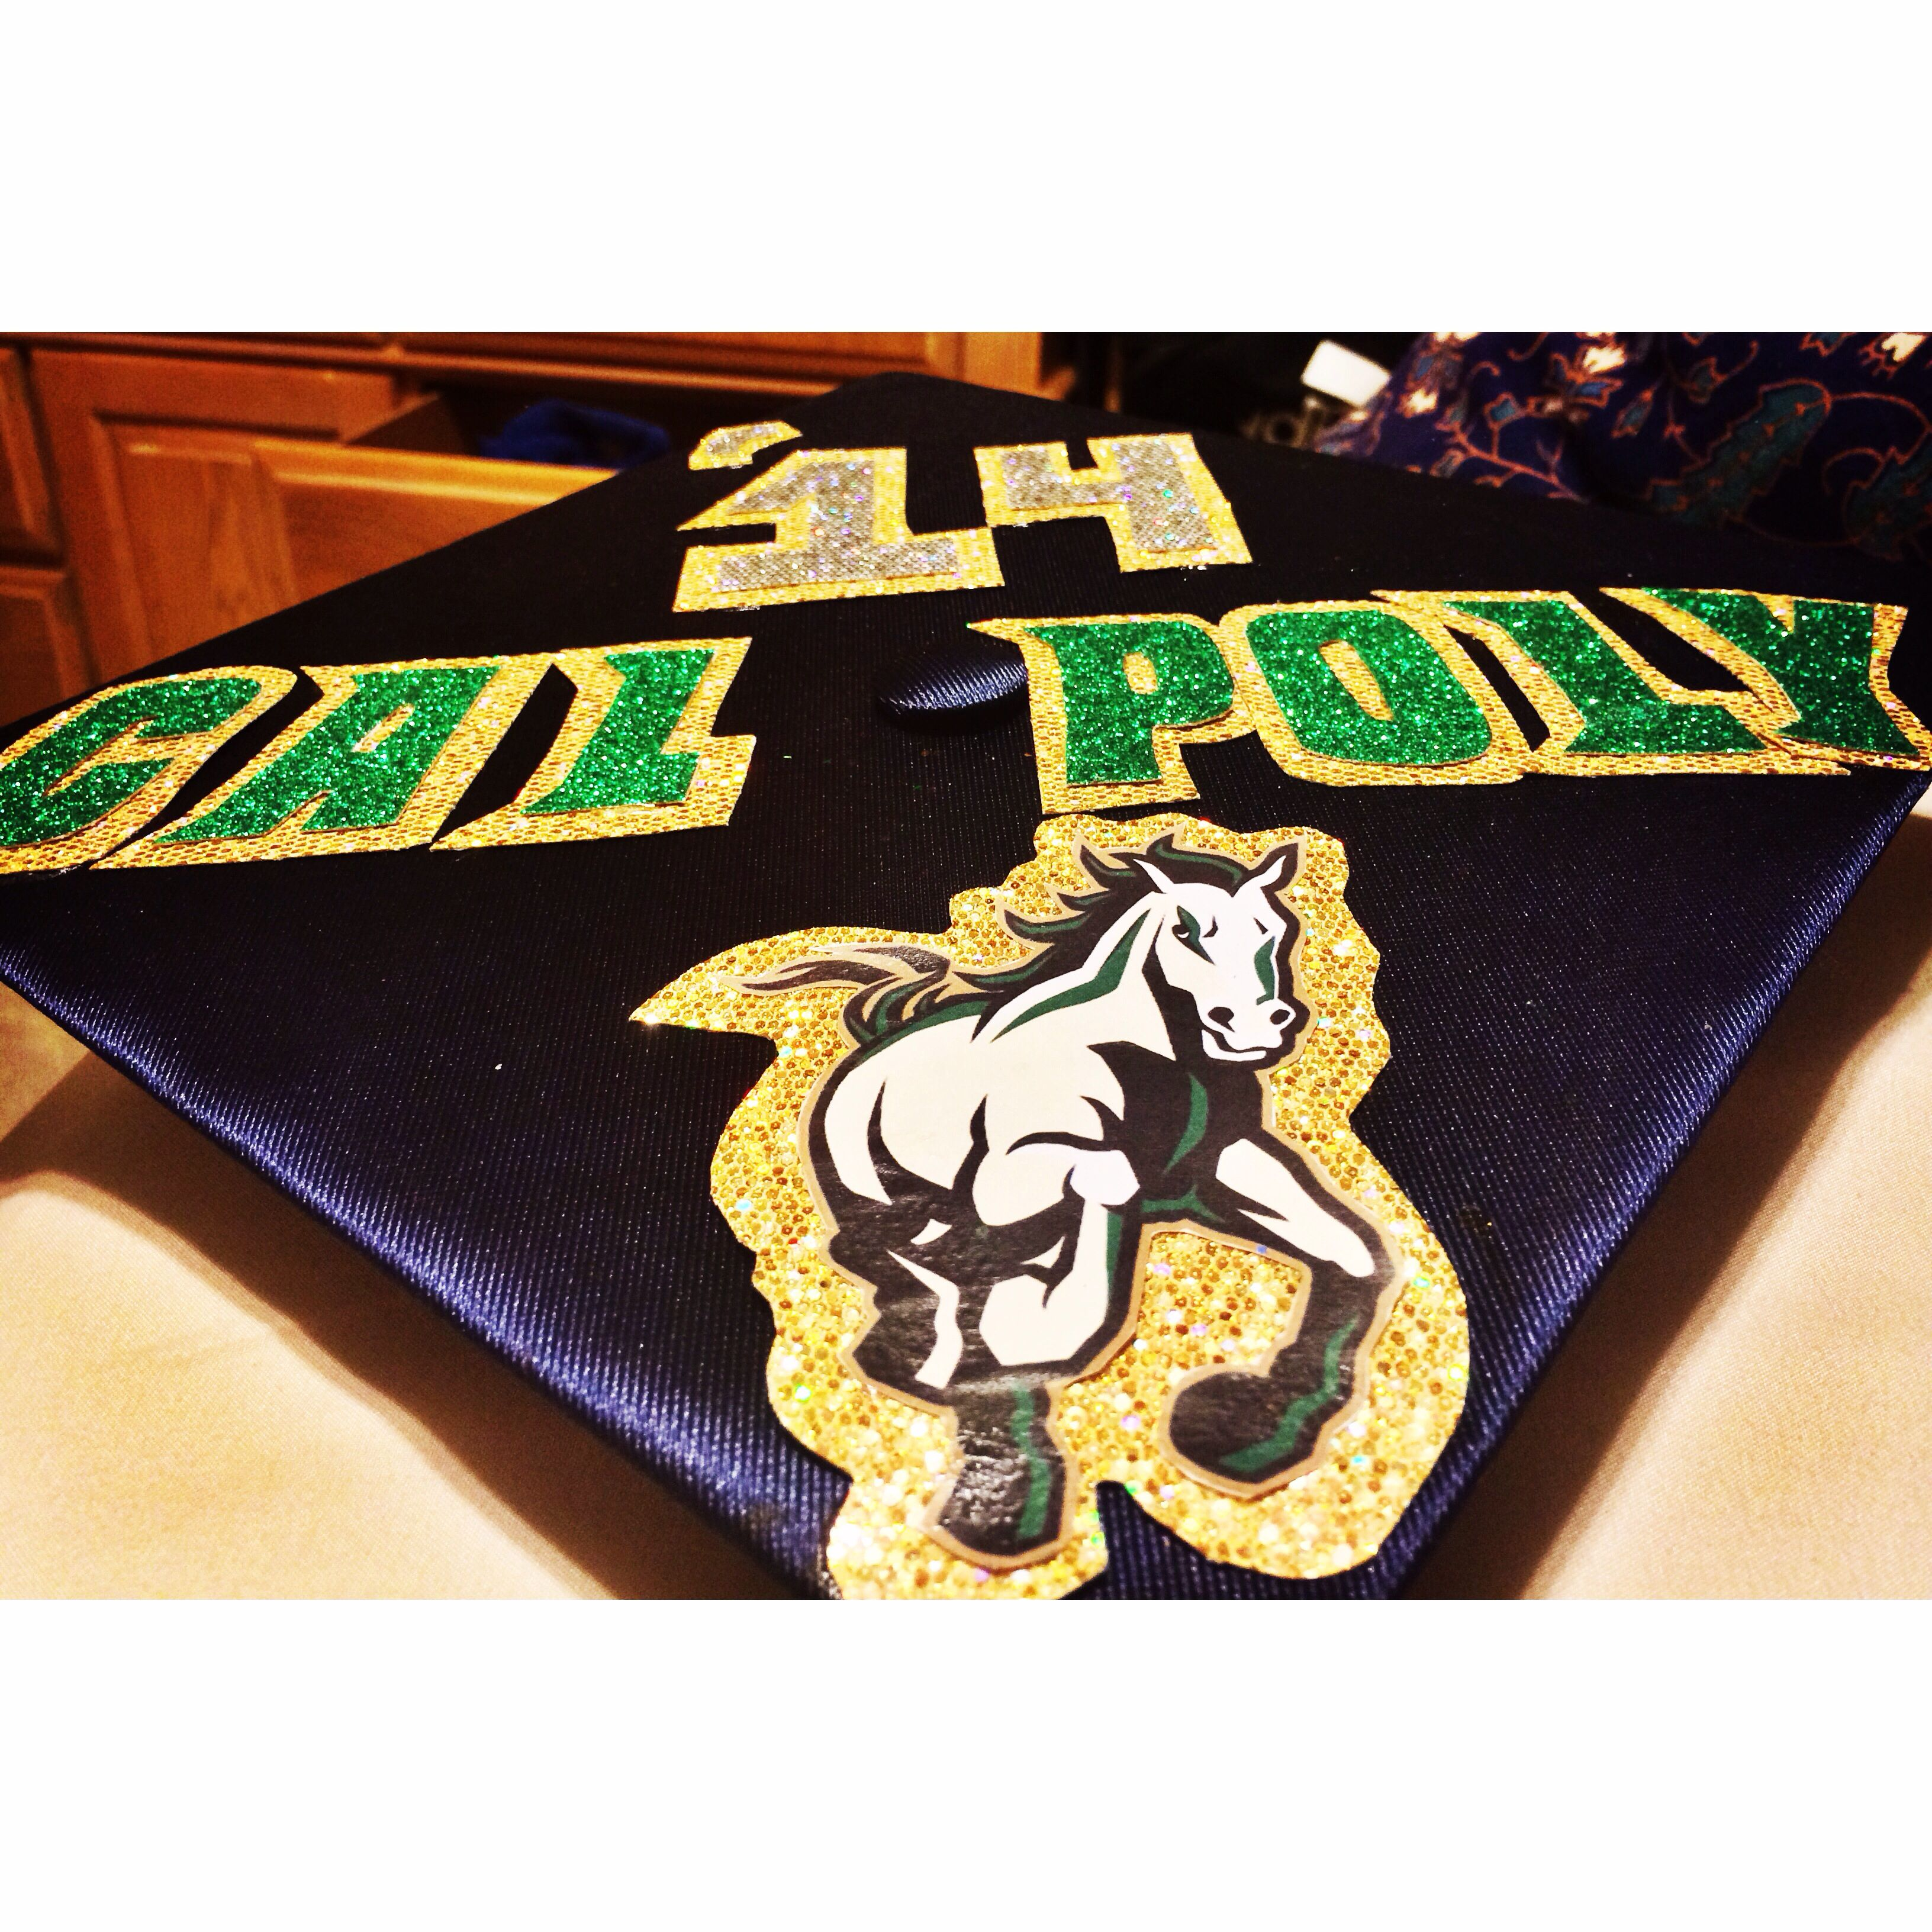 Graduation is next week so I had to decorate my cap. Cal Poly bound San  Luis Obispo   my home away from home. 3e7c28335689